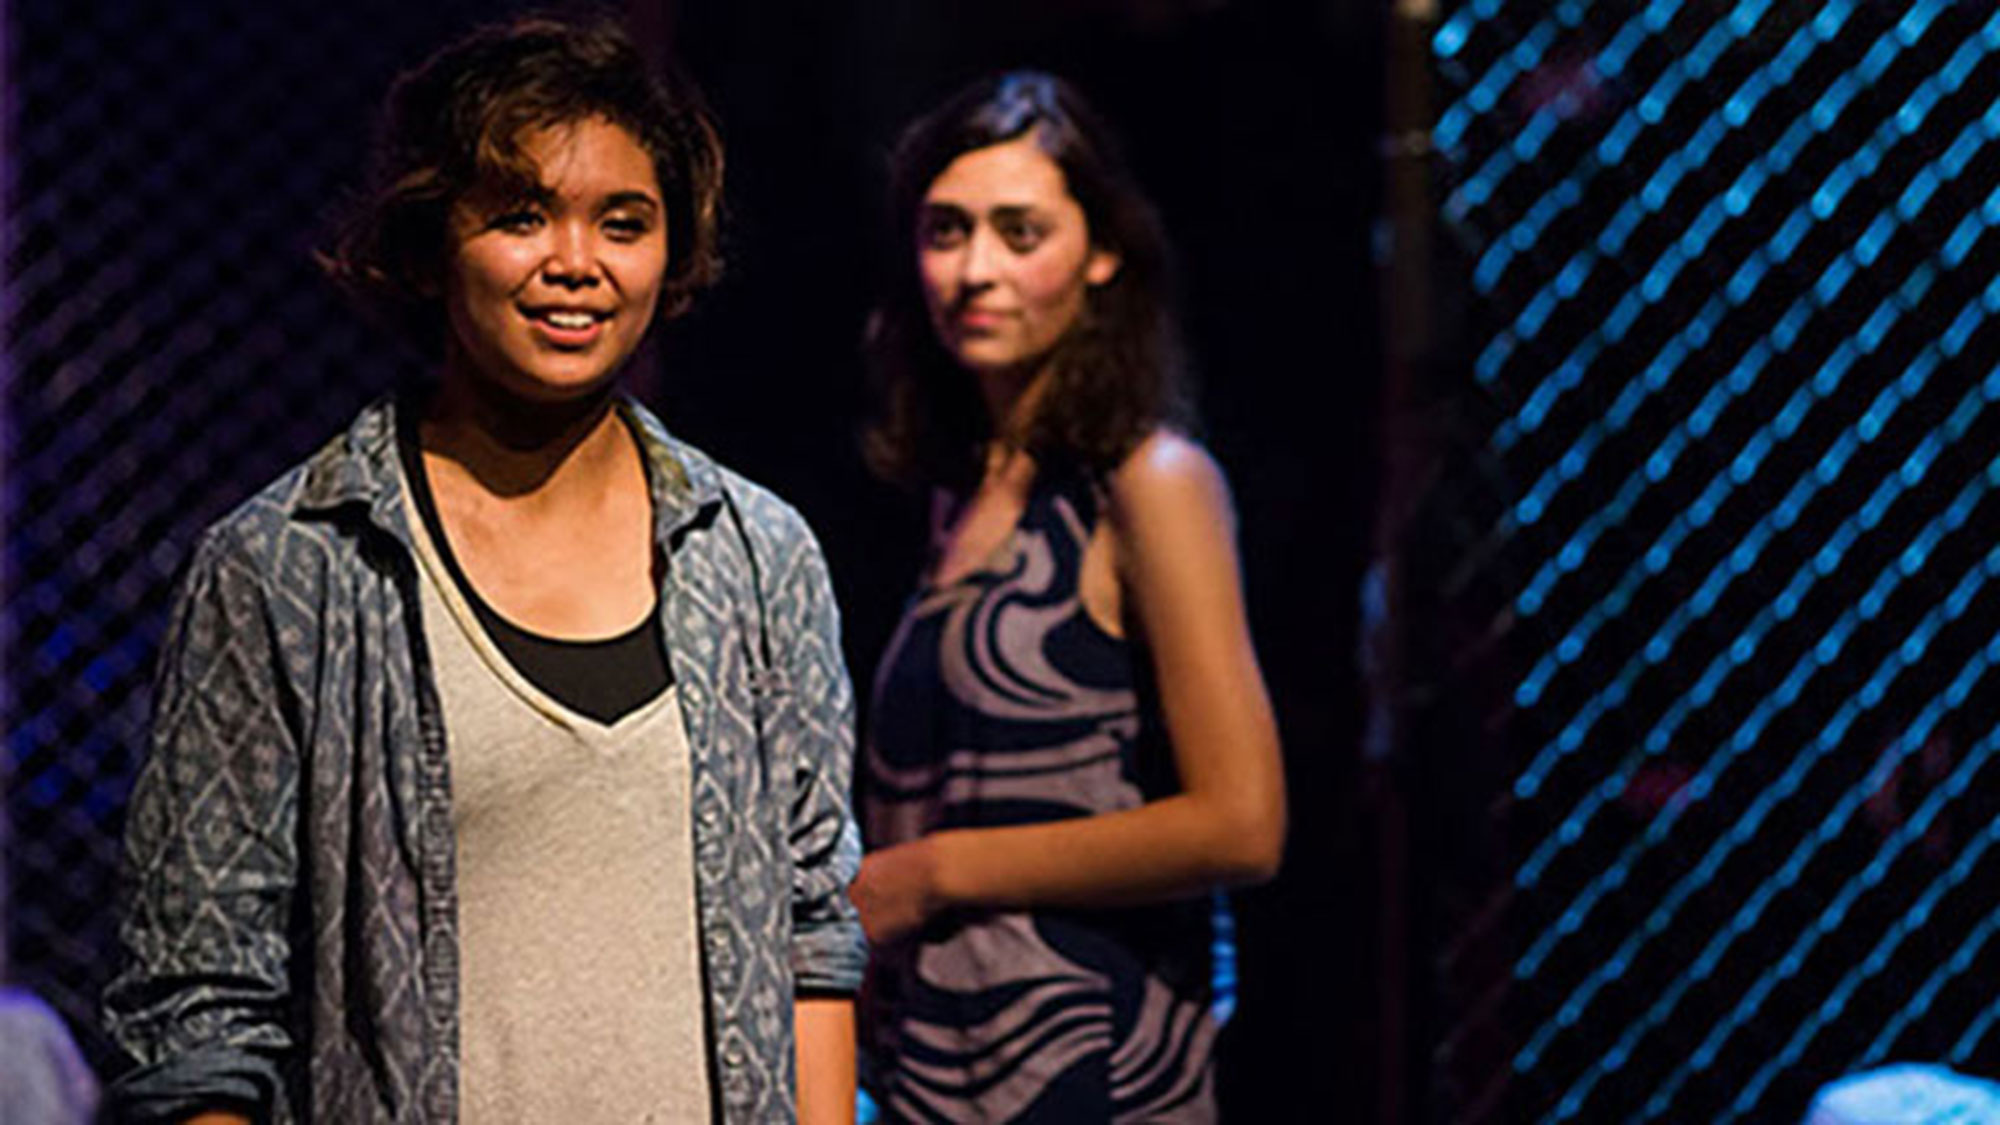 Cristina Ibarra speaks on a theater stage with another actress behind her.